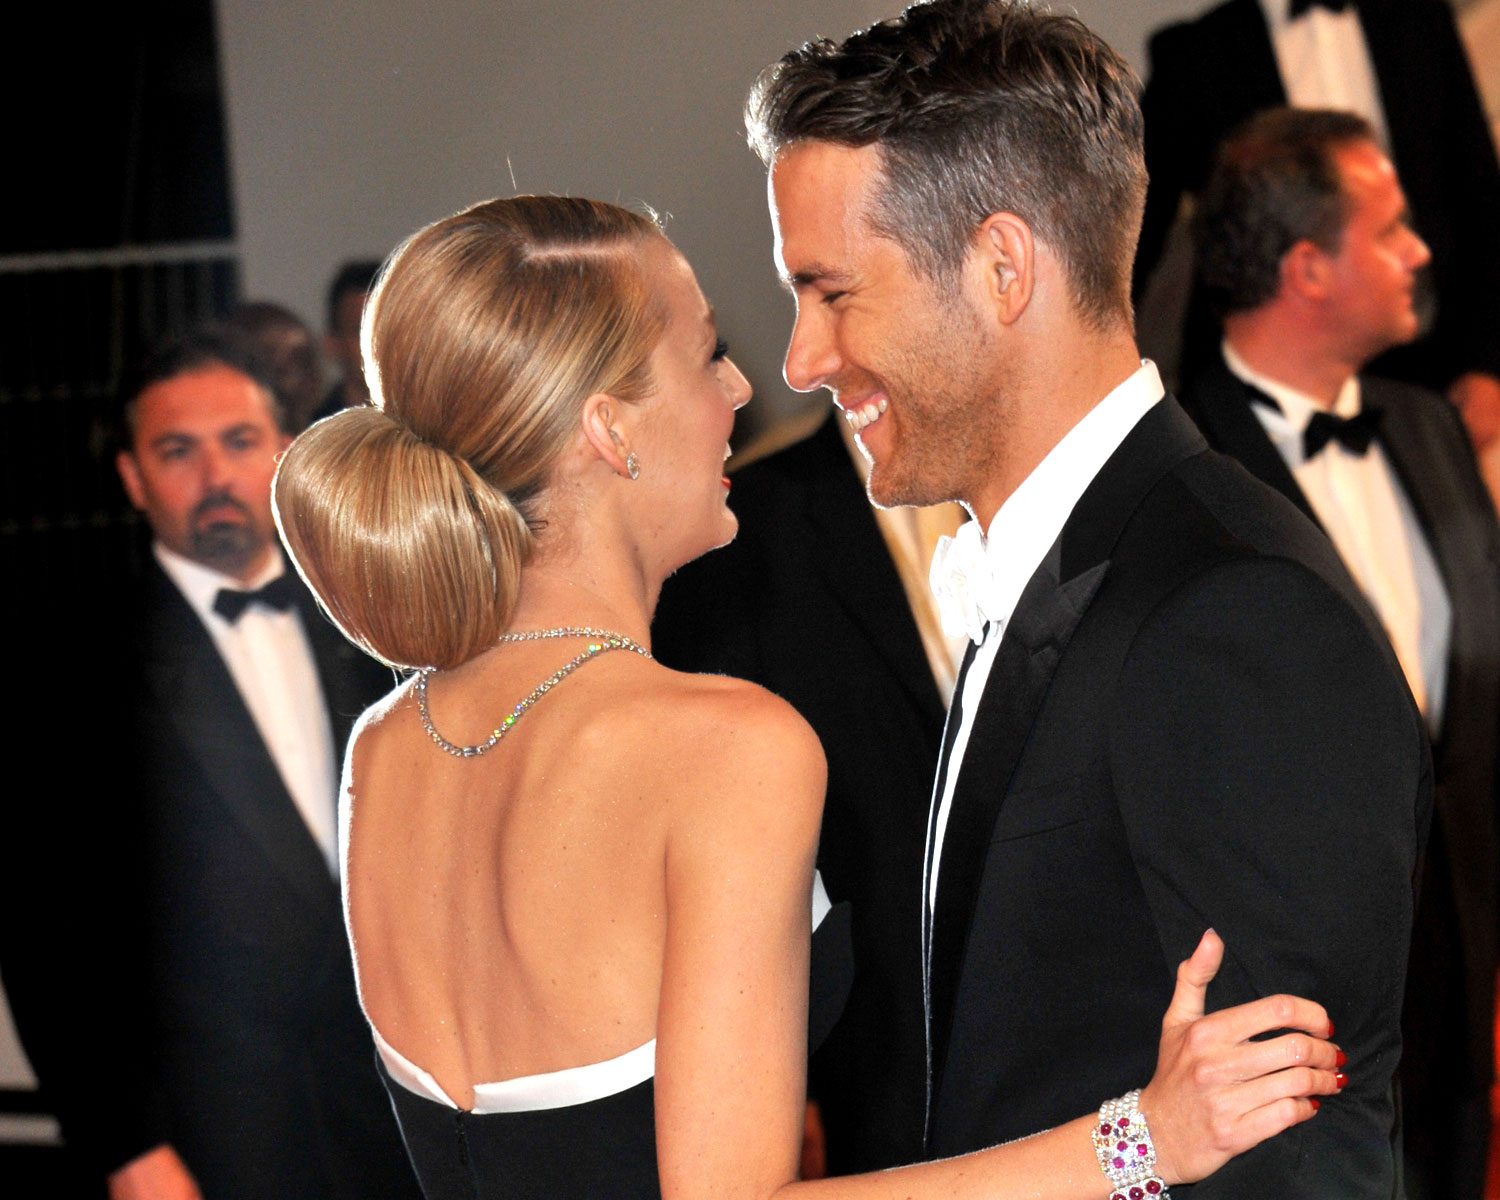 Ryan Reynolds On The Moment He Fell In Love With Blake Lively